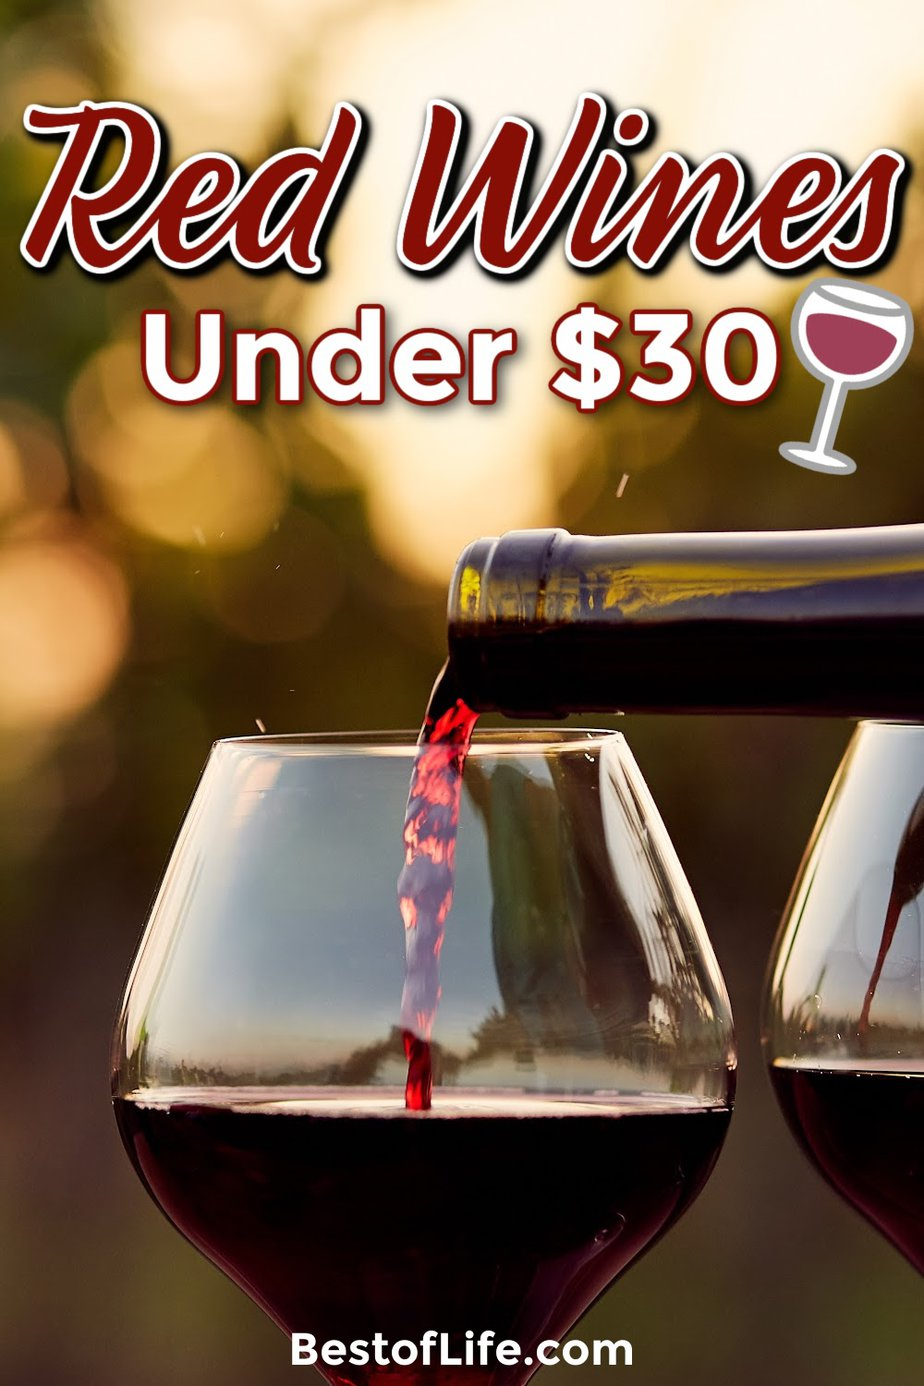 The best red wines under $30 offer a smooth profile and are perfect for dinners and happy hours with friends or a night in alone. Tips for Wine Lovers | Red Wines for Parties | Fall Party Red Wines | Good Wines Under $30 | Red Wines for Parties | Wine Tasting Tips | Wine Down #redwine #winetasting via @thebestoflife